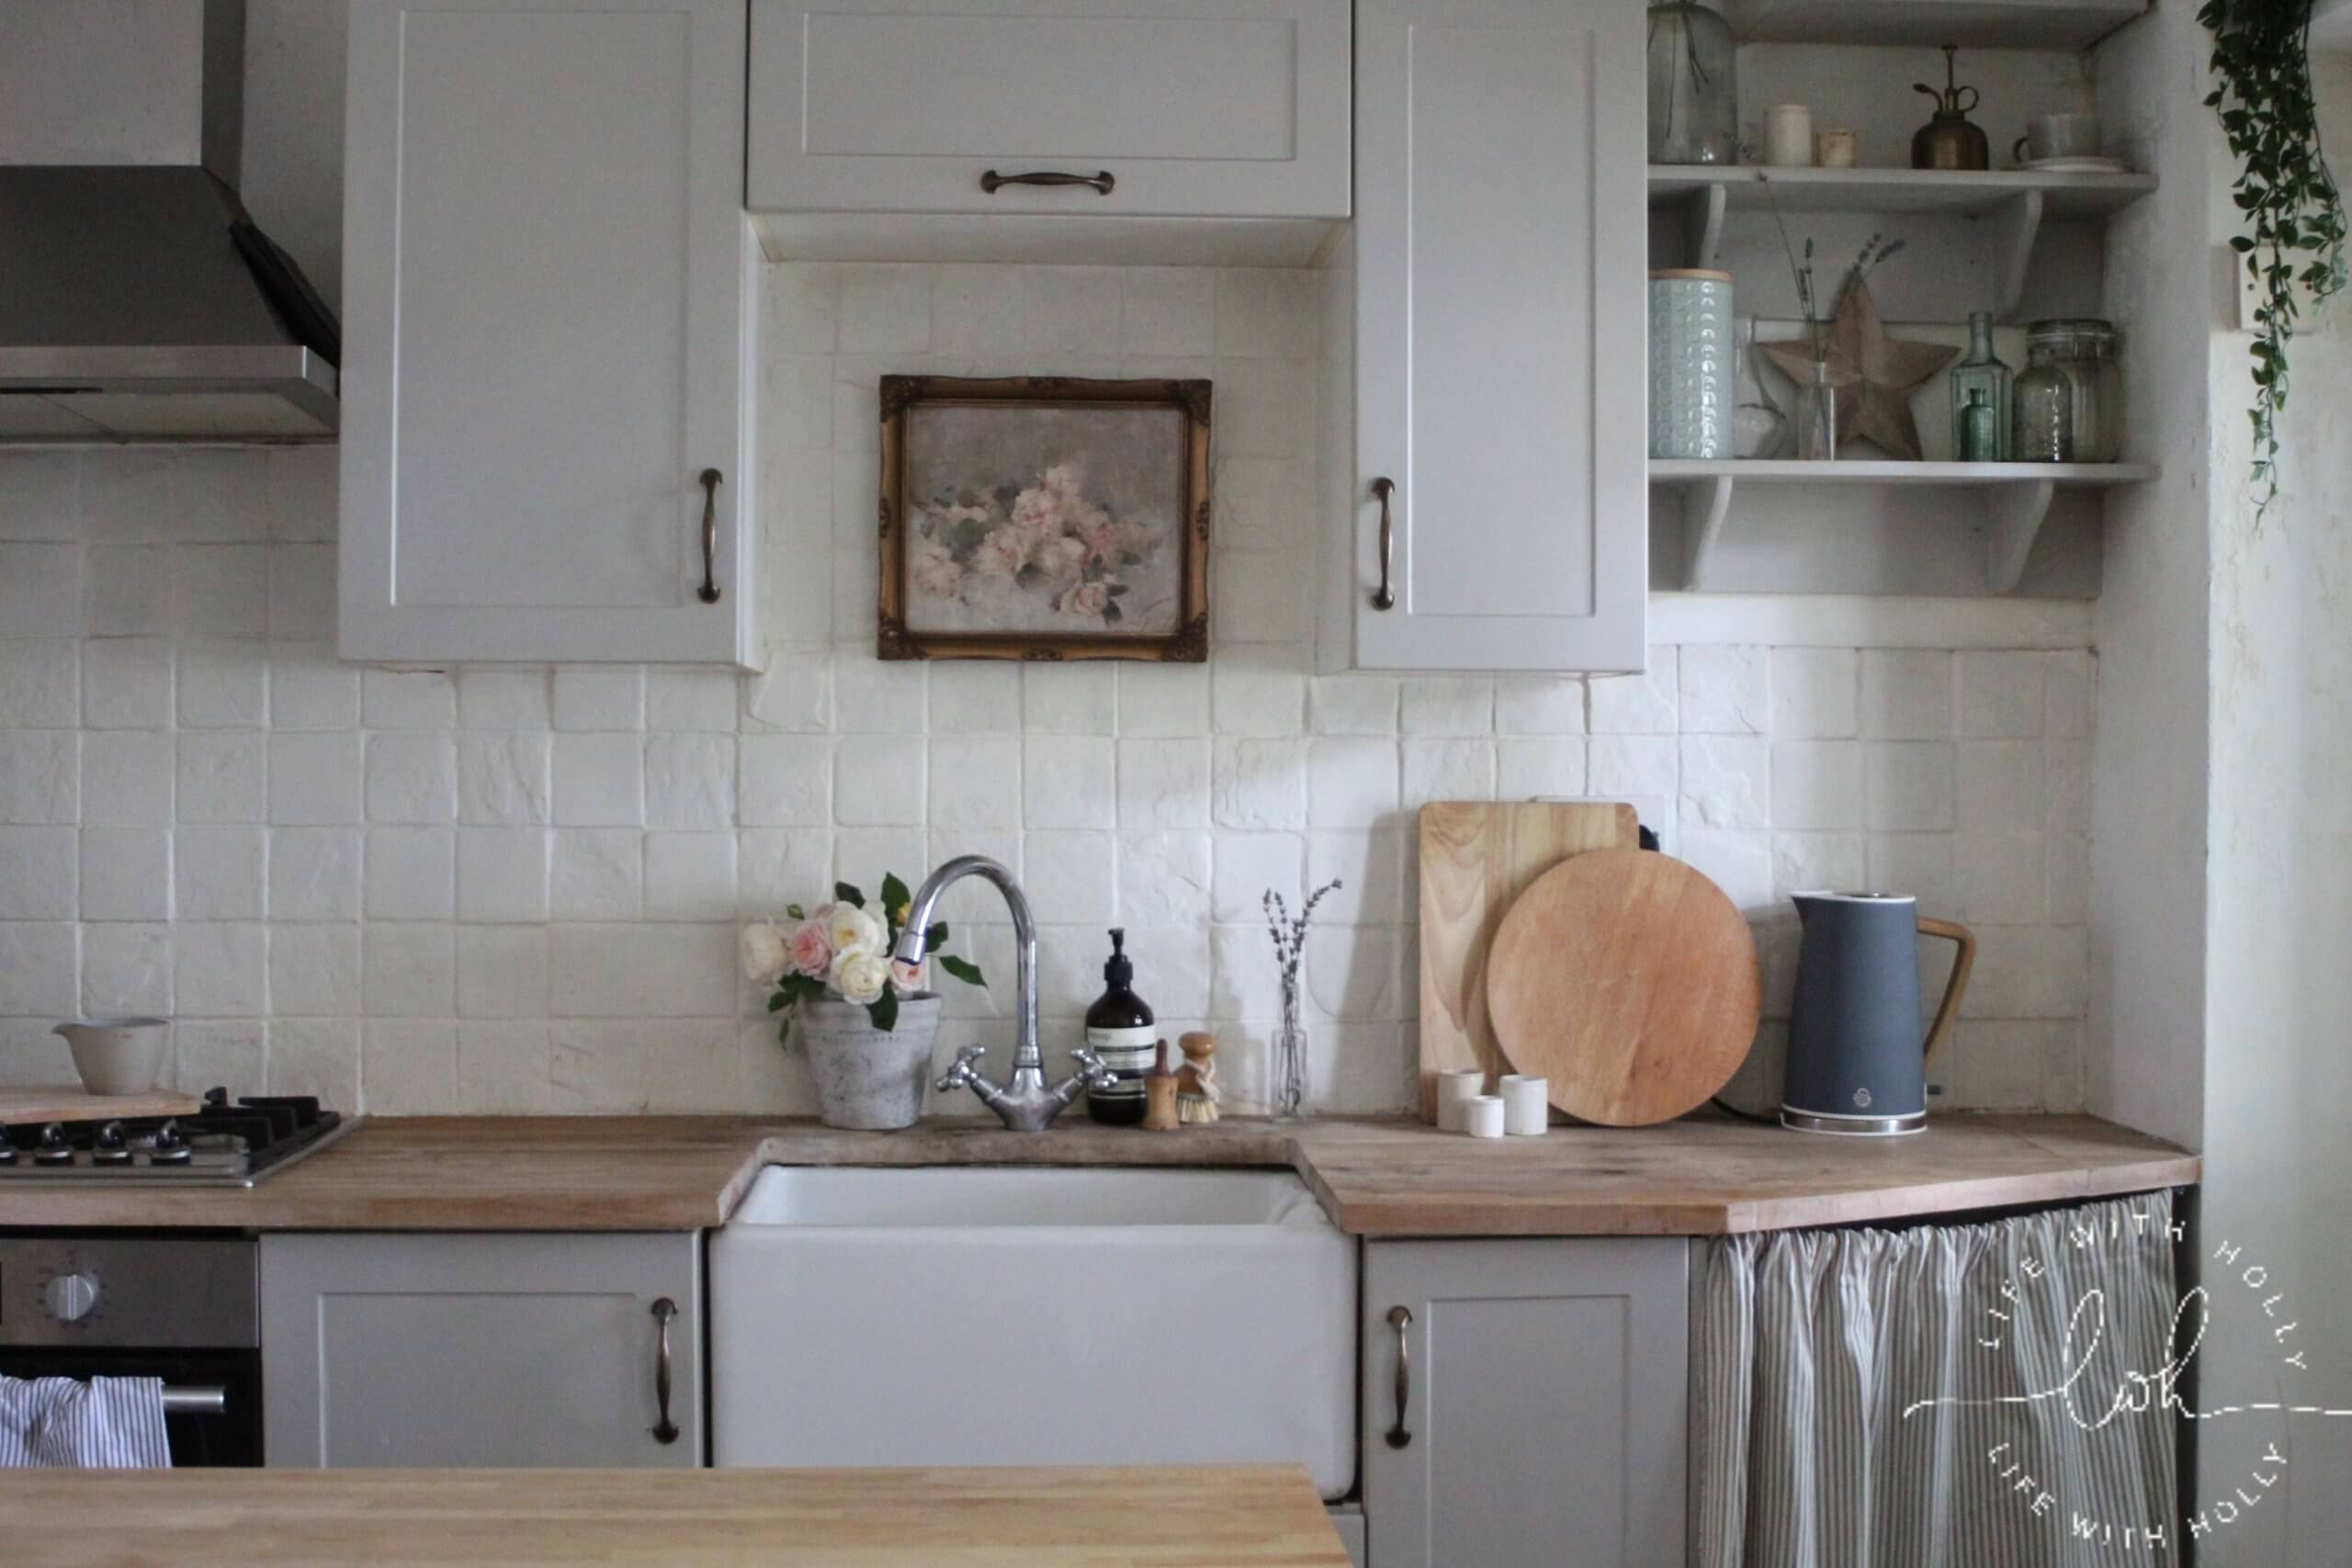 Grey Shaker Kitchen with Wood Worktops - Cheaper Vintage Artwork